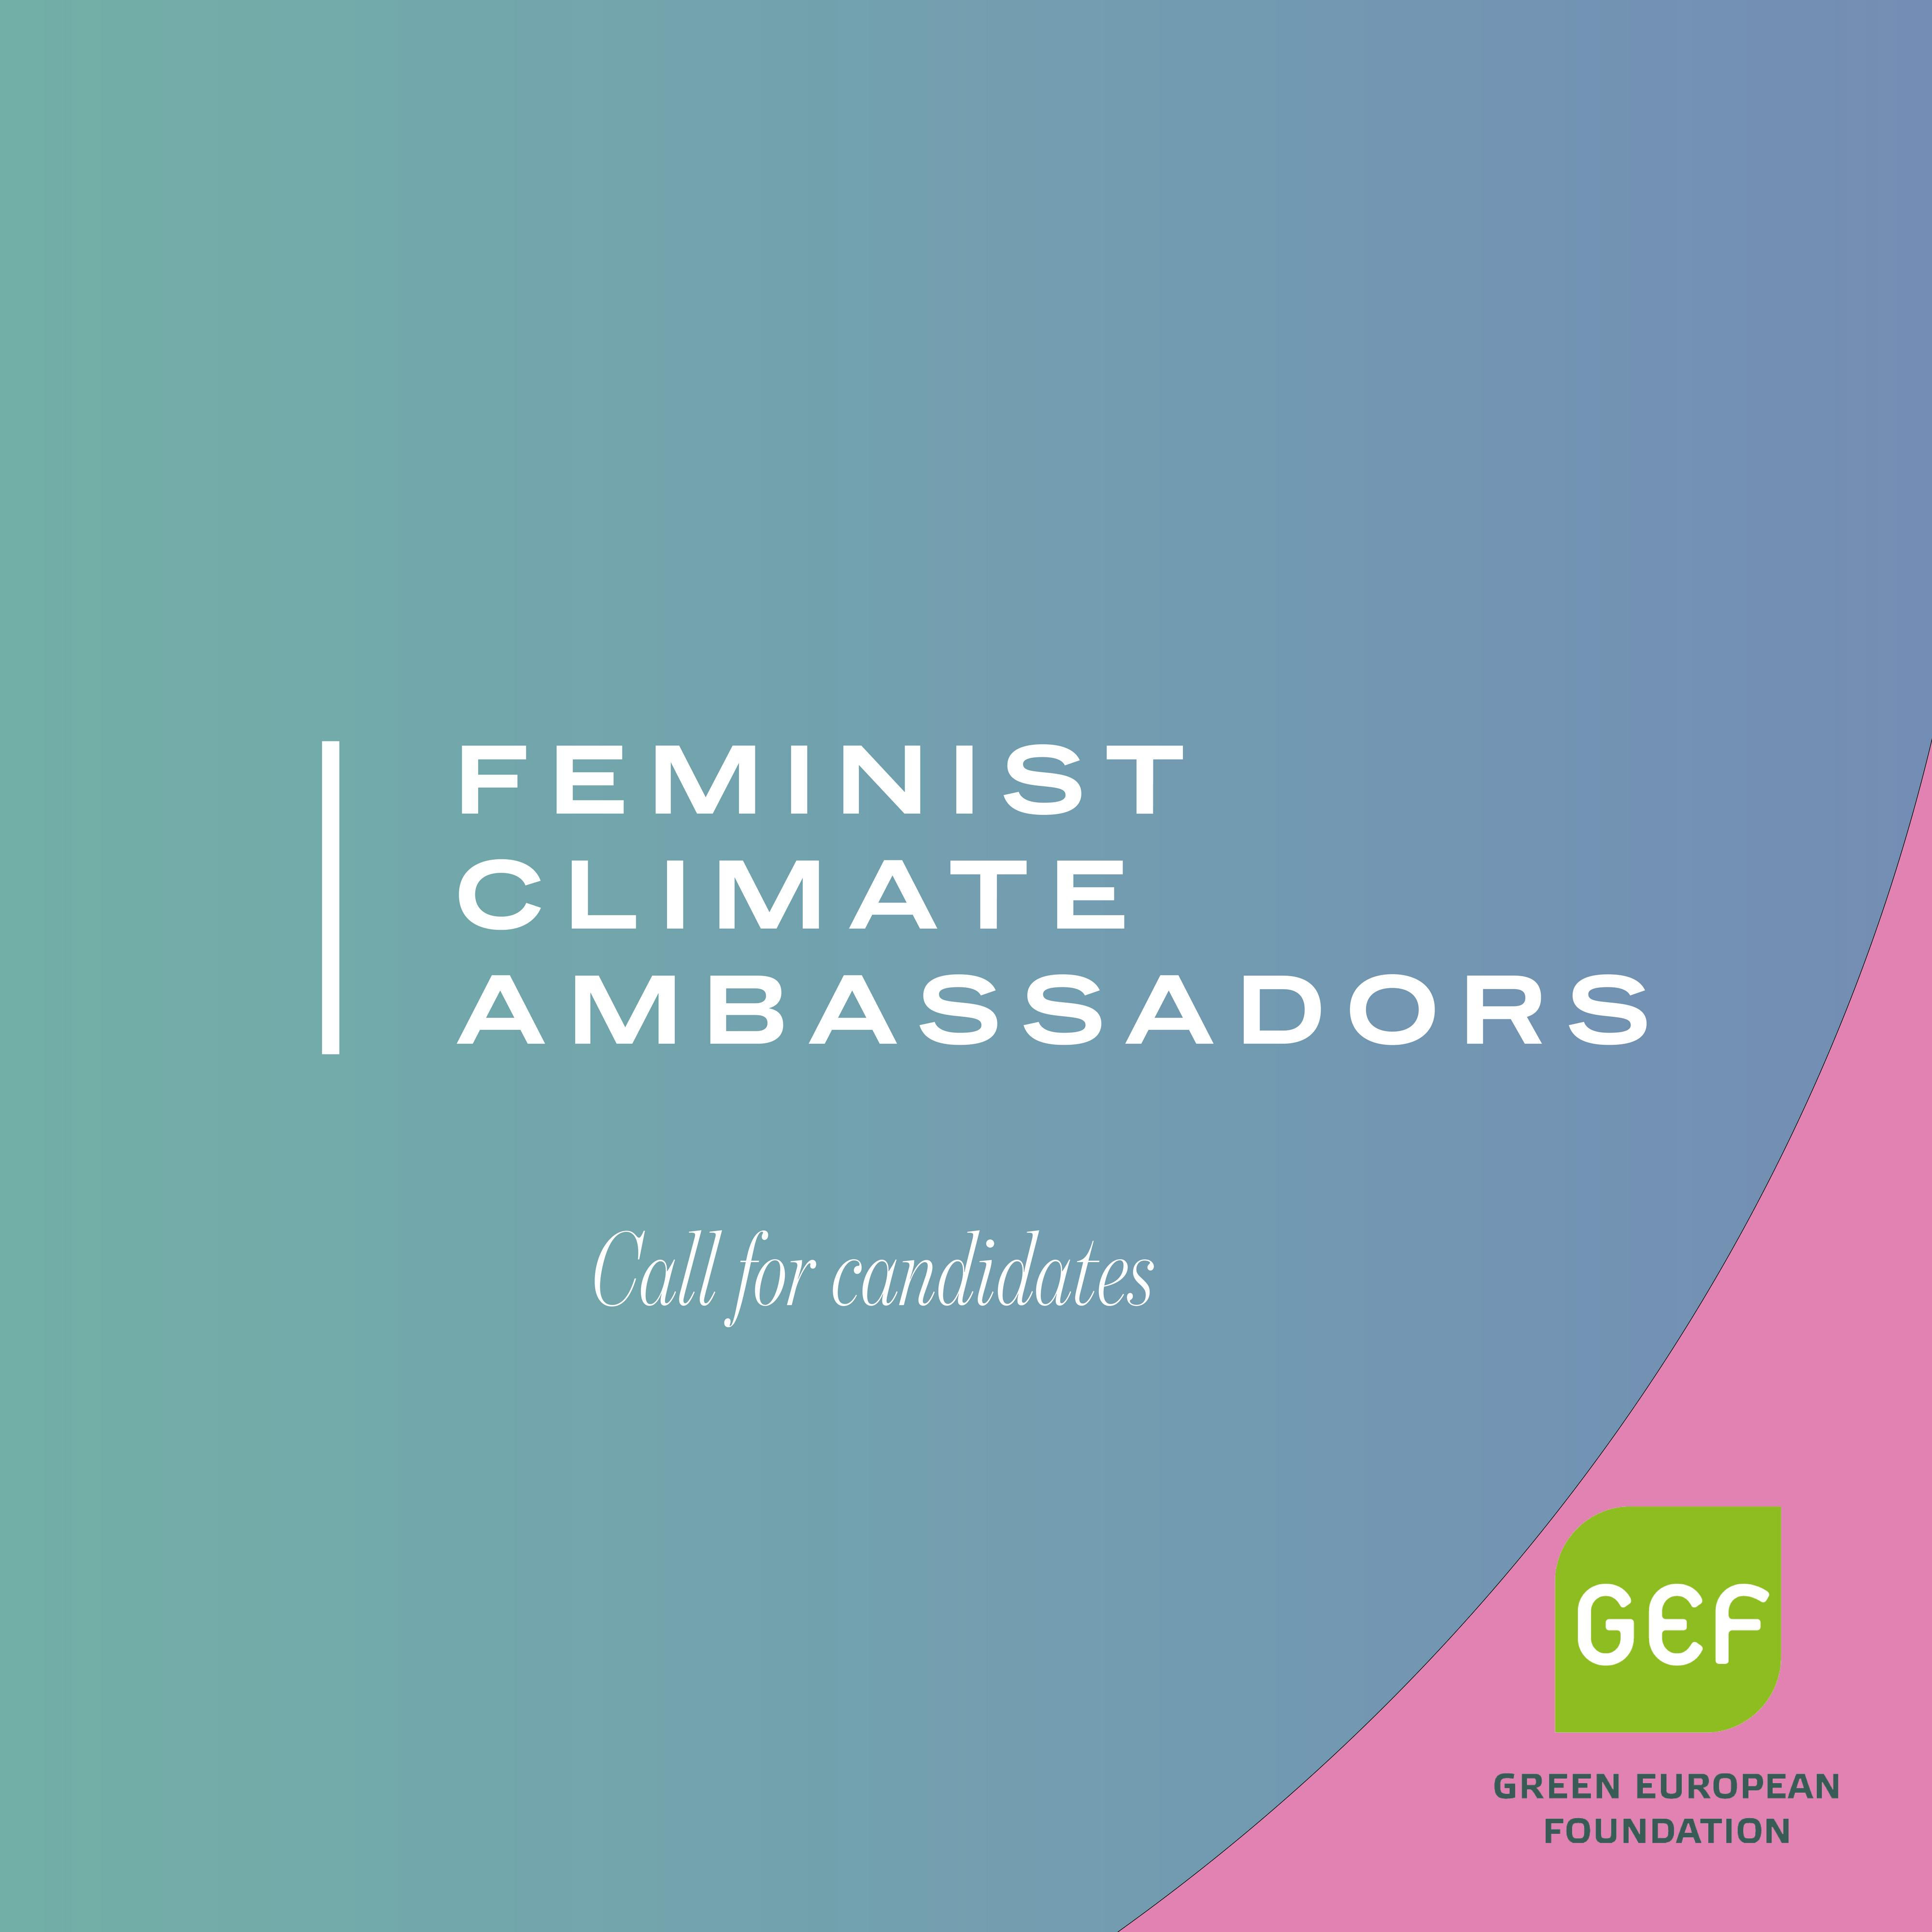 Call for candidates to the feminist climate ambassadors -training programme of 2021.